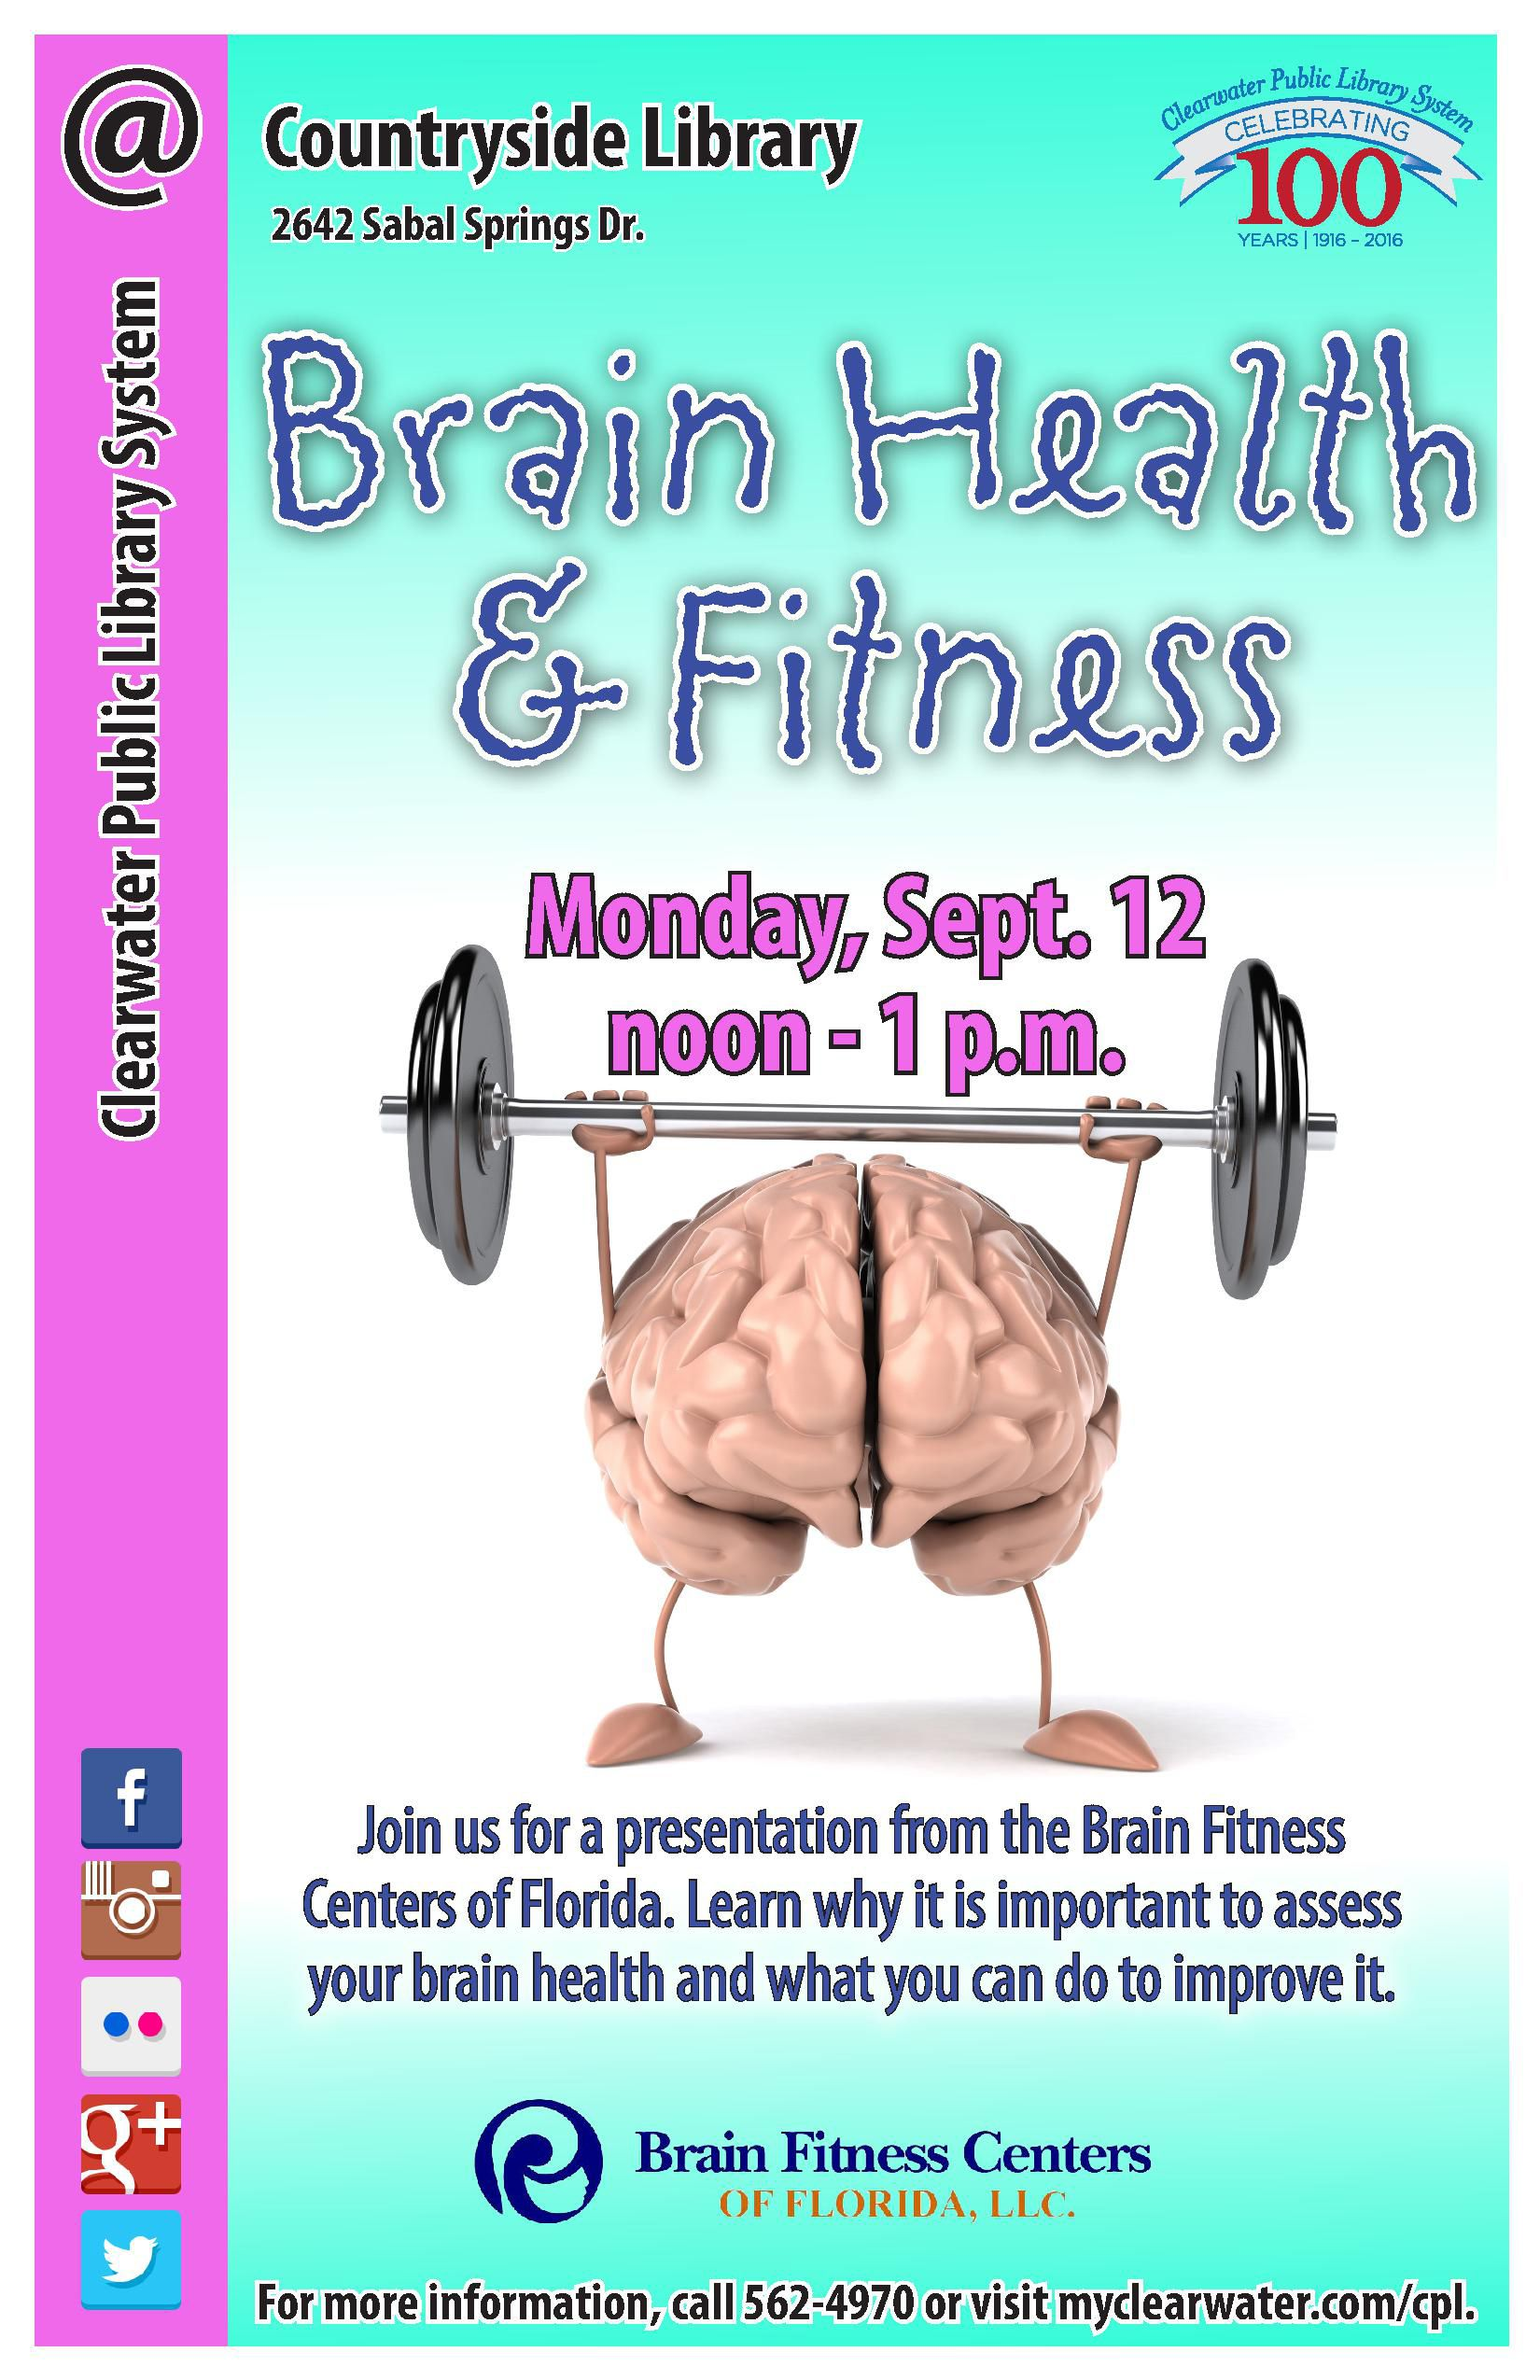 Join us for a presentation from the brain fitness centers